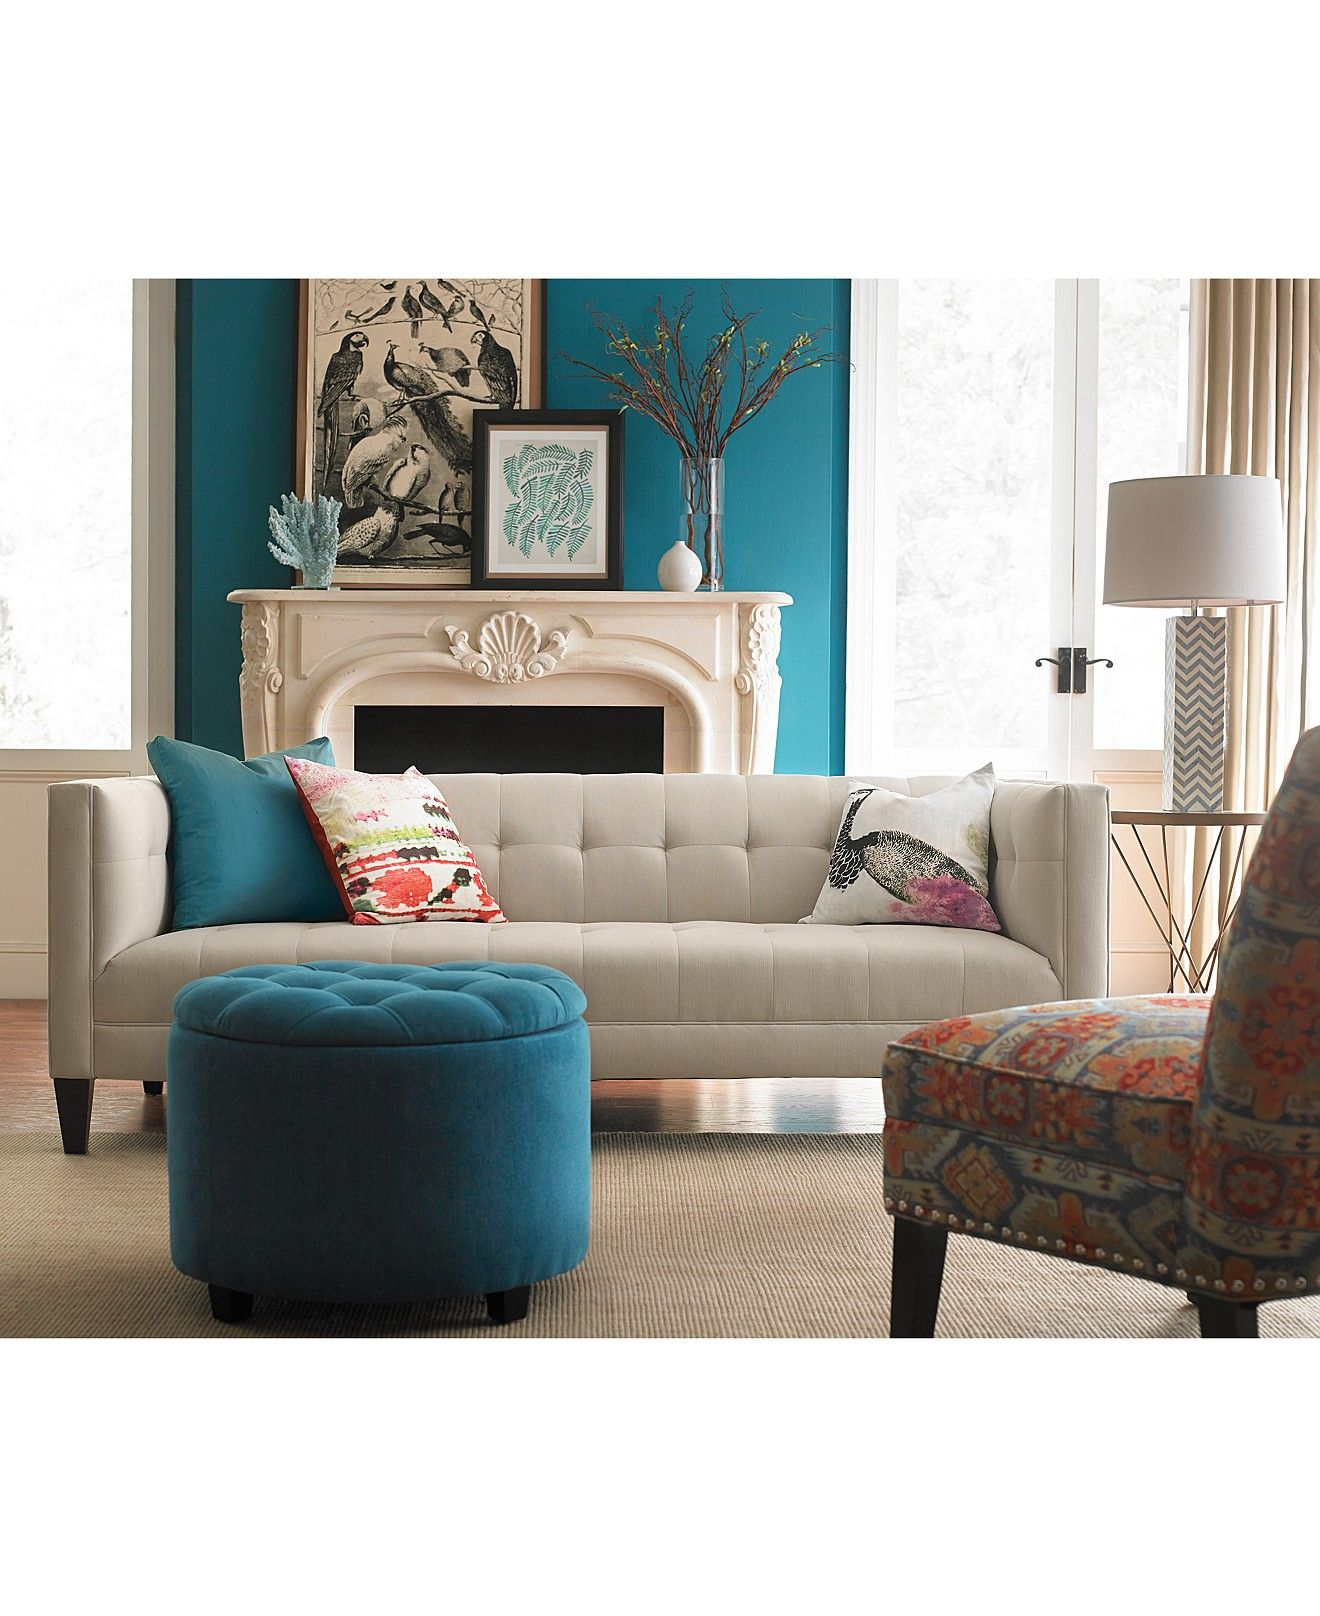 Www Macyfurniture: Briel Tufted Tight Back & Seat Sofa Collection